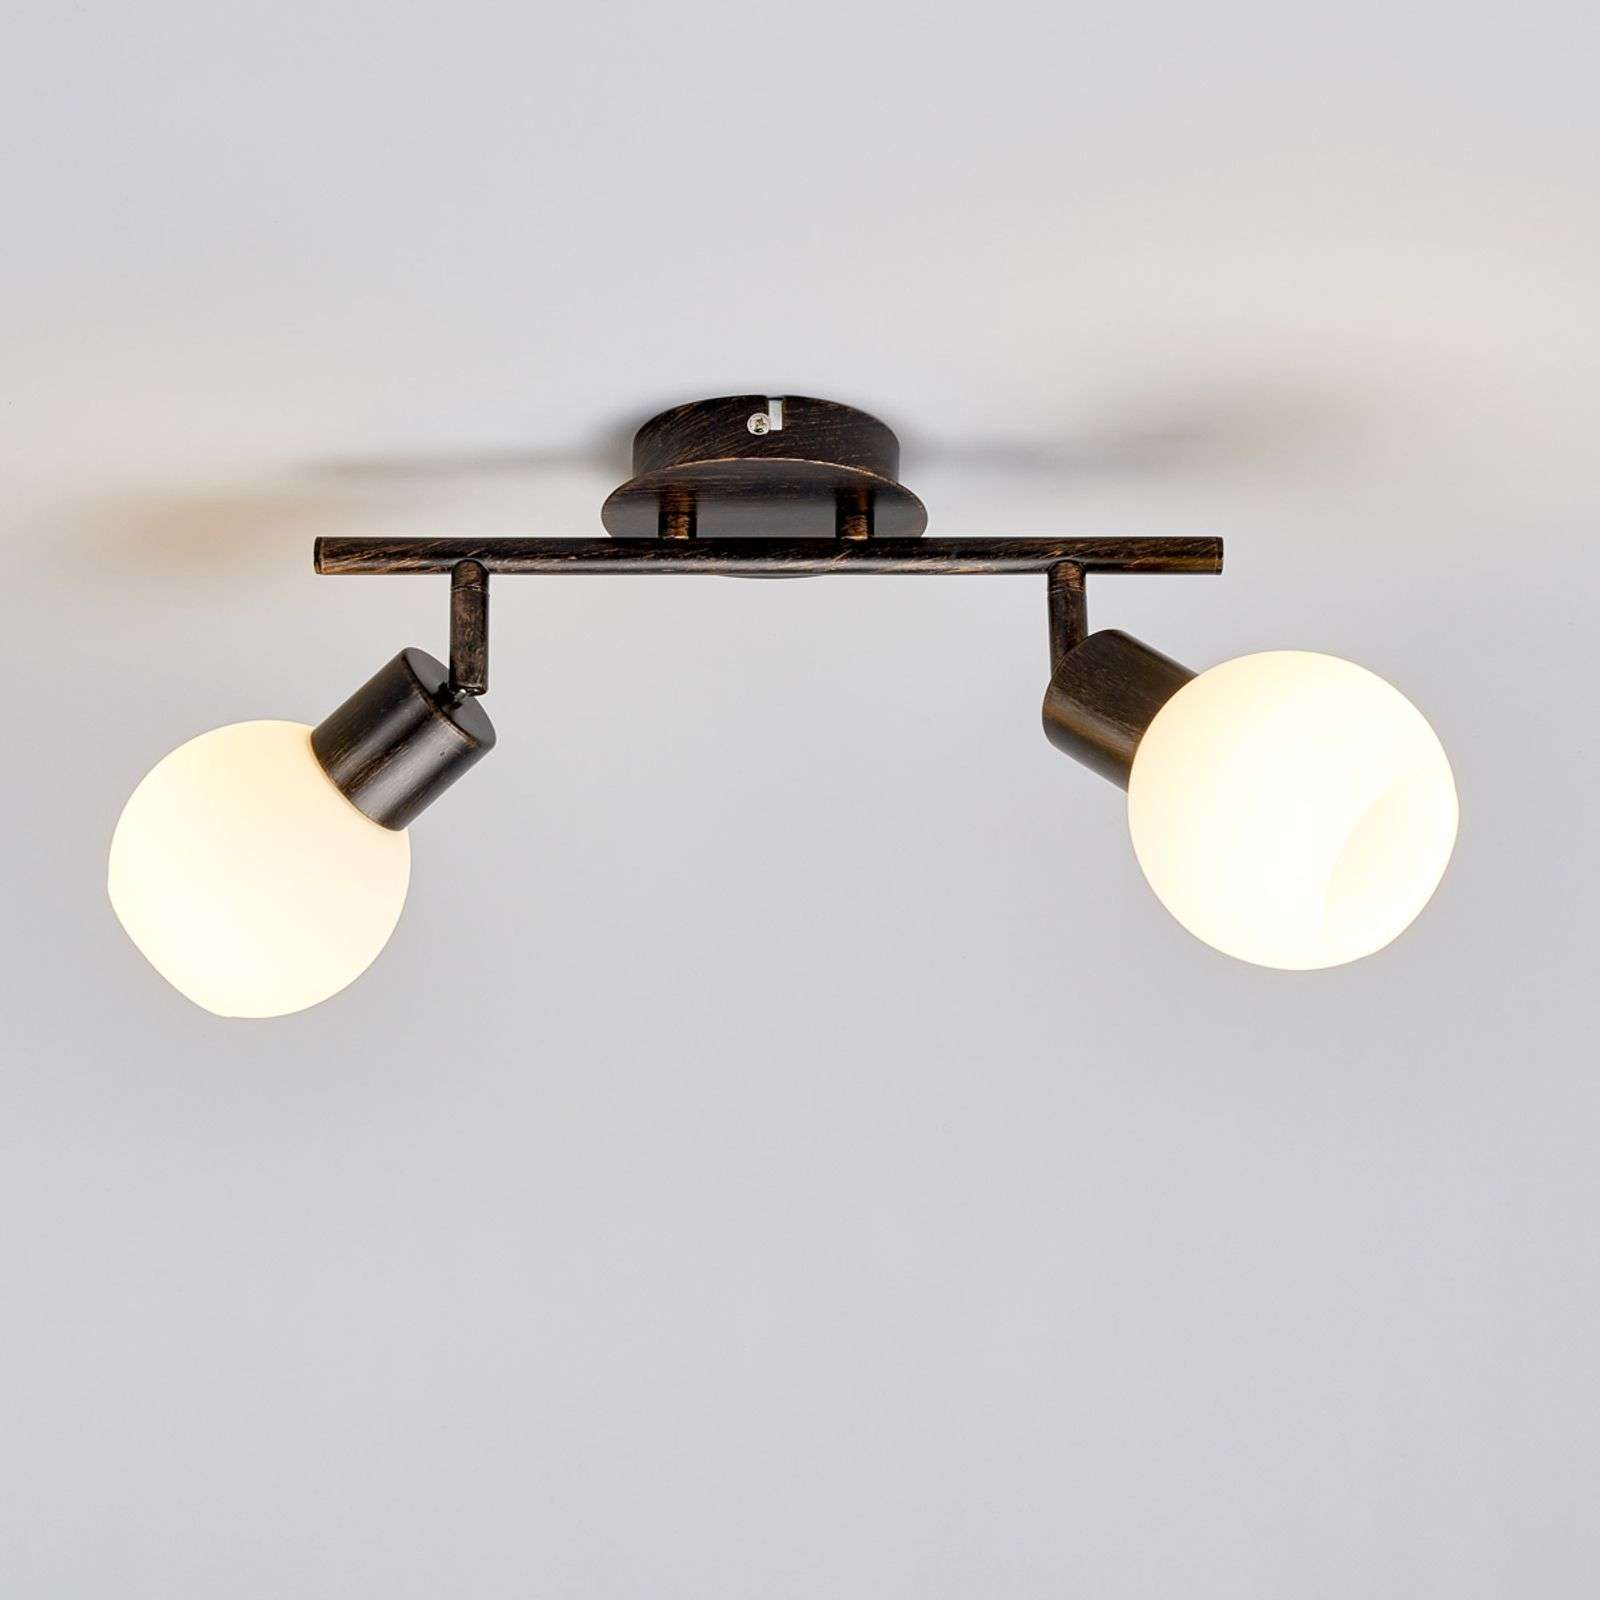 Elaina - lampada da soffitto con LED E14, ruggine